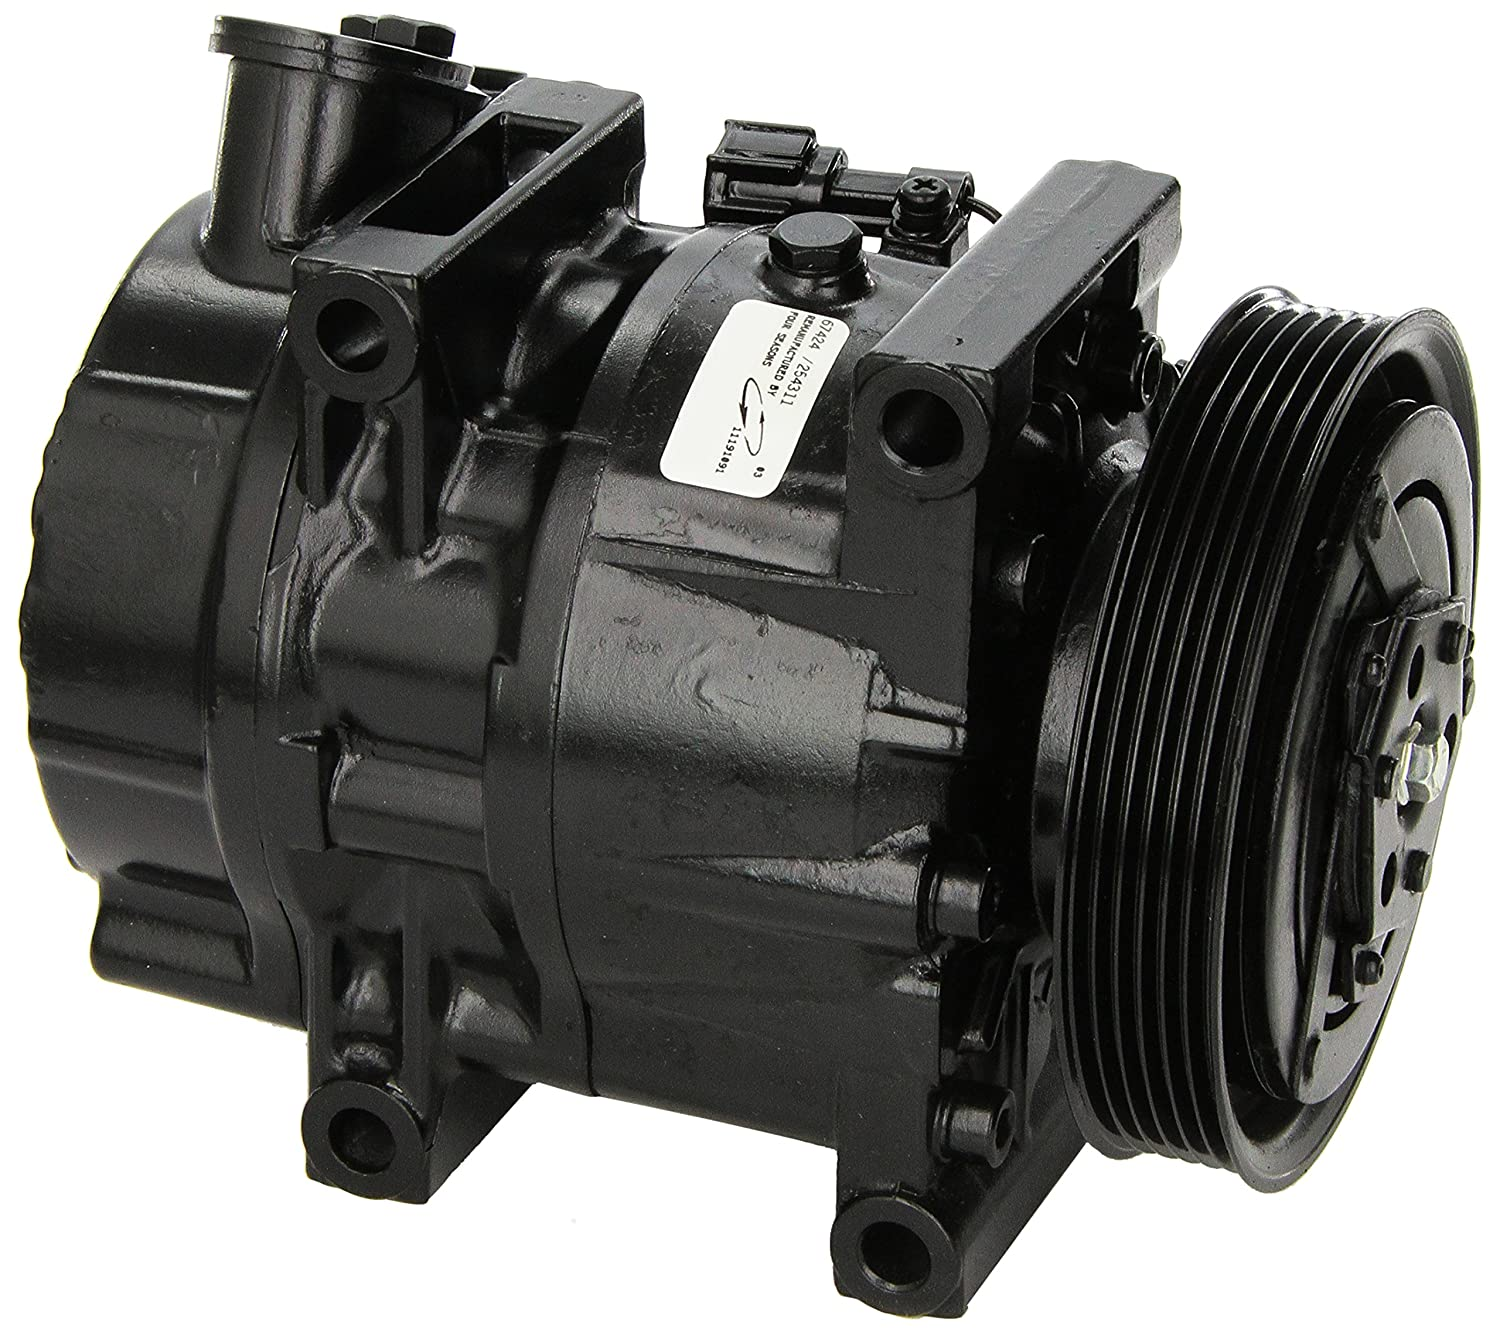 Four Seasons 67424 Remanufactured Compressor with Clutch FS67424